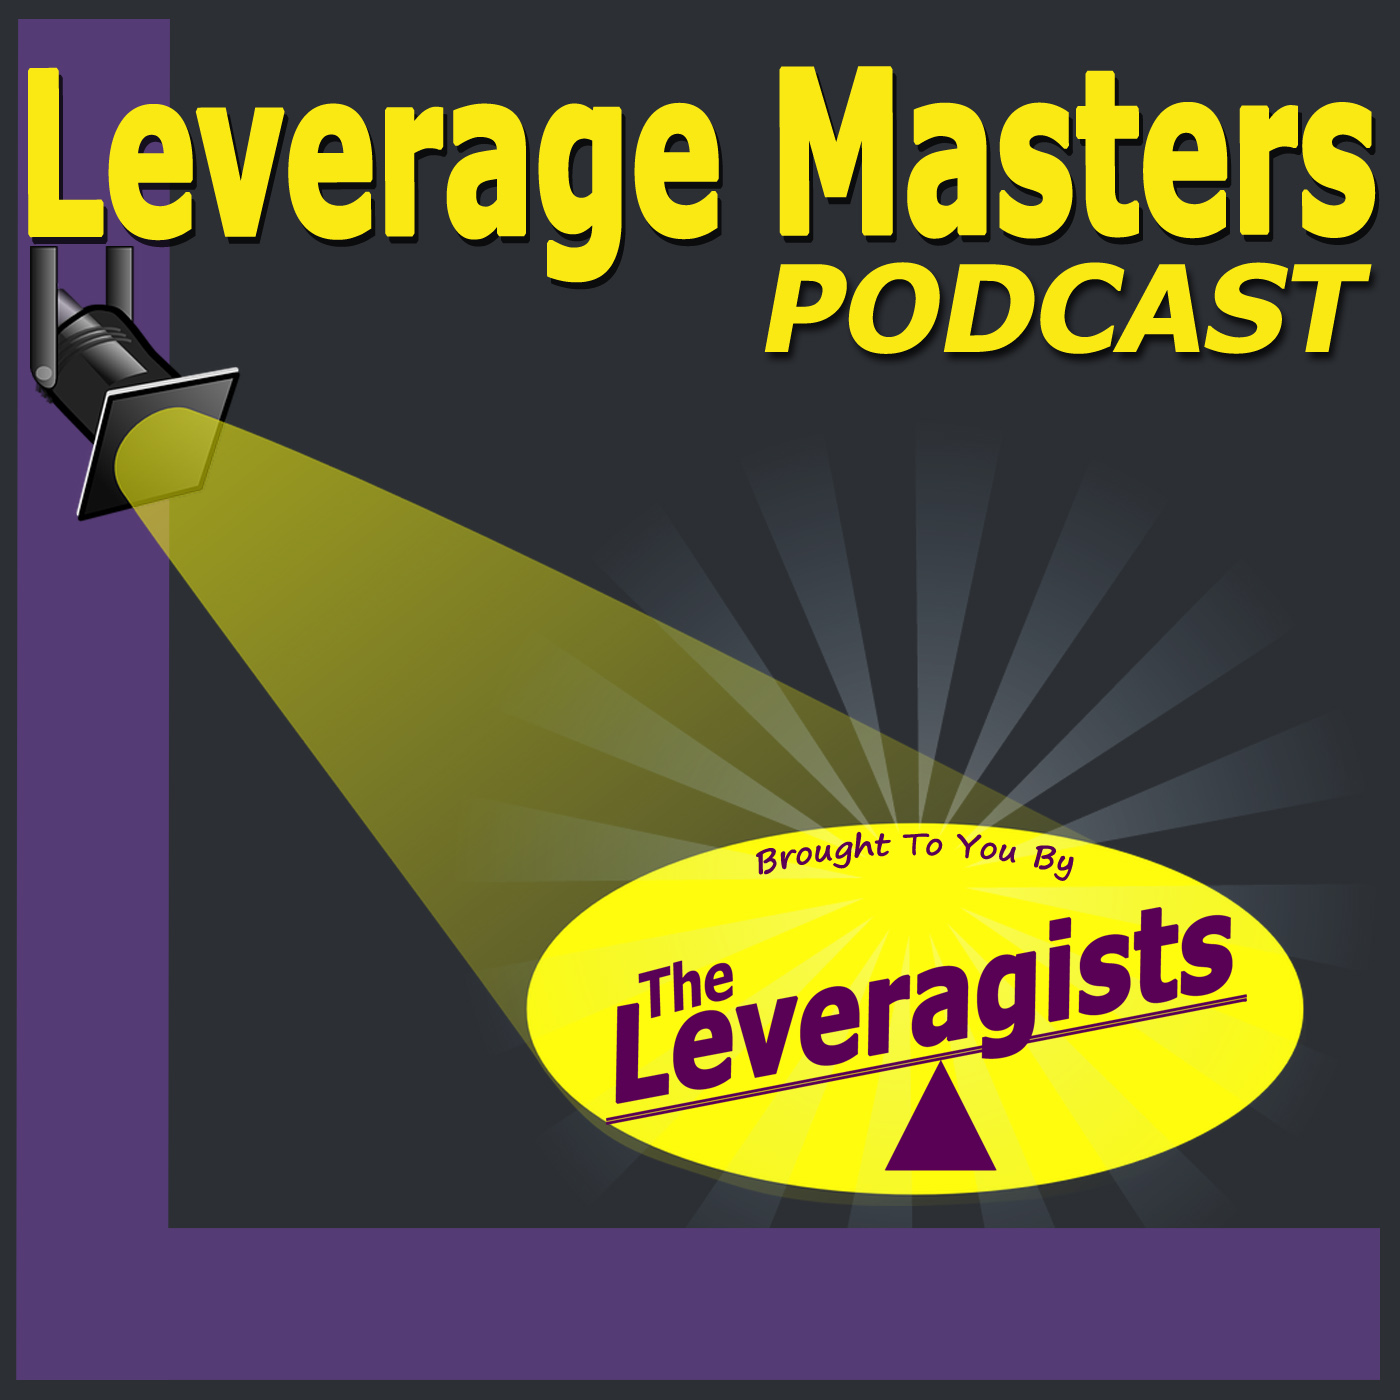 The Leveragists and Leverage Masters Podcast